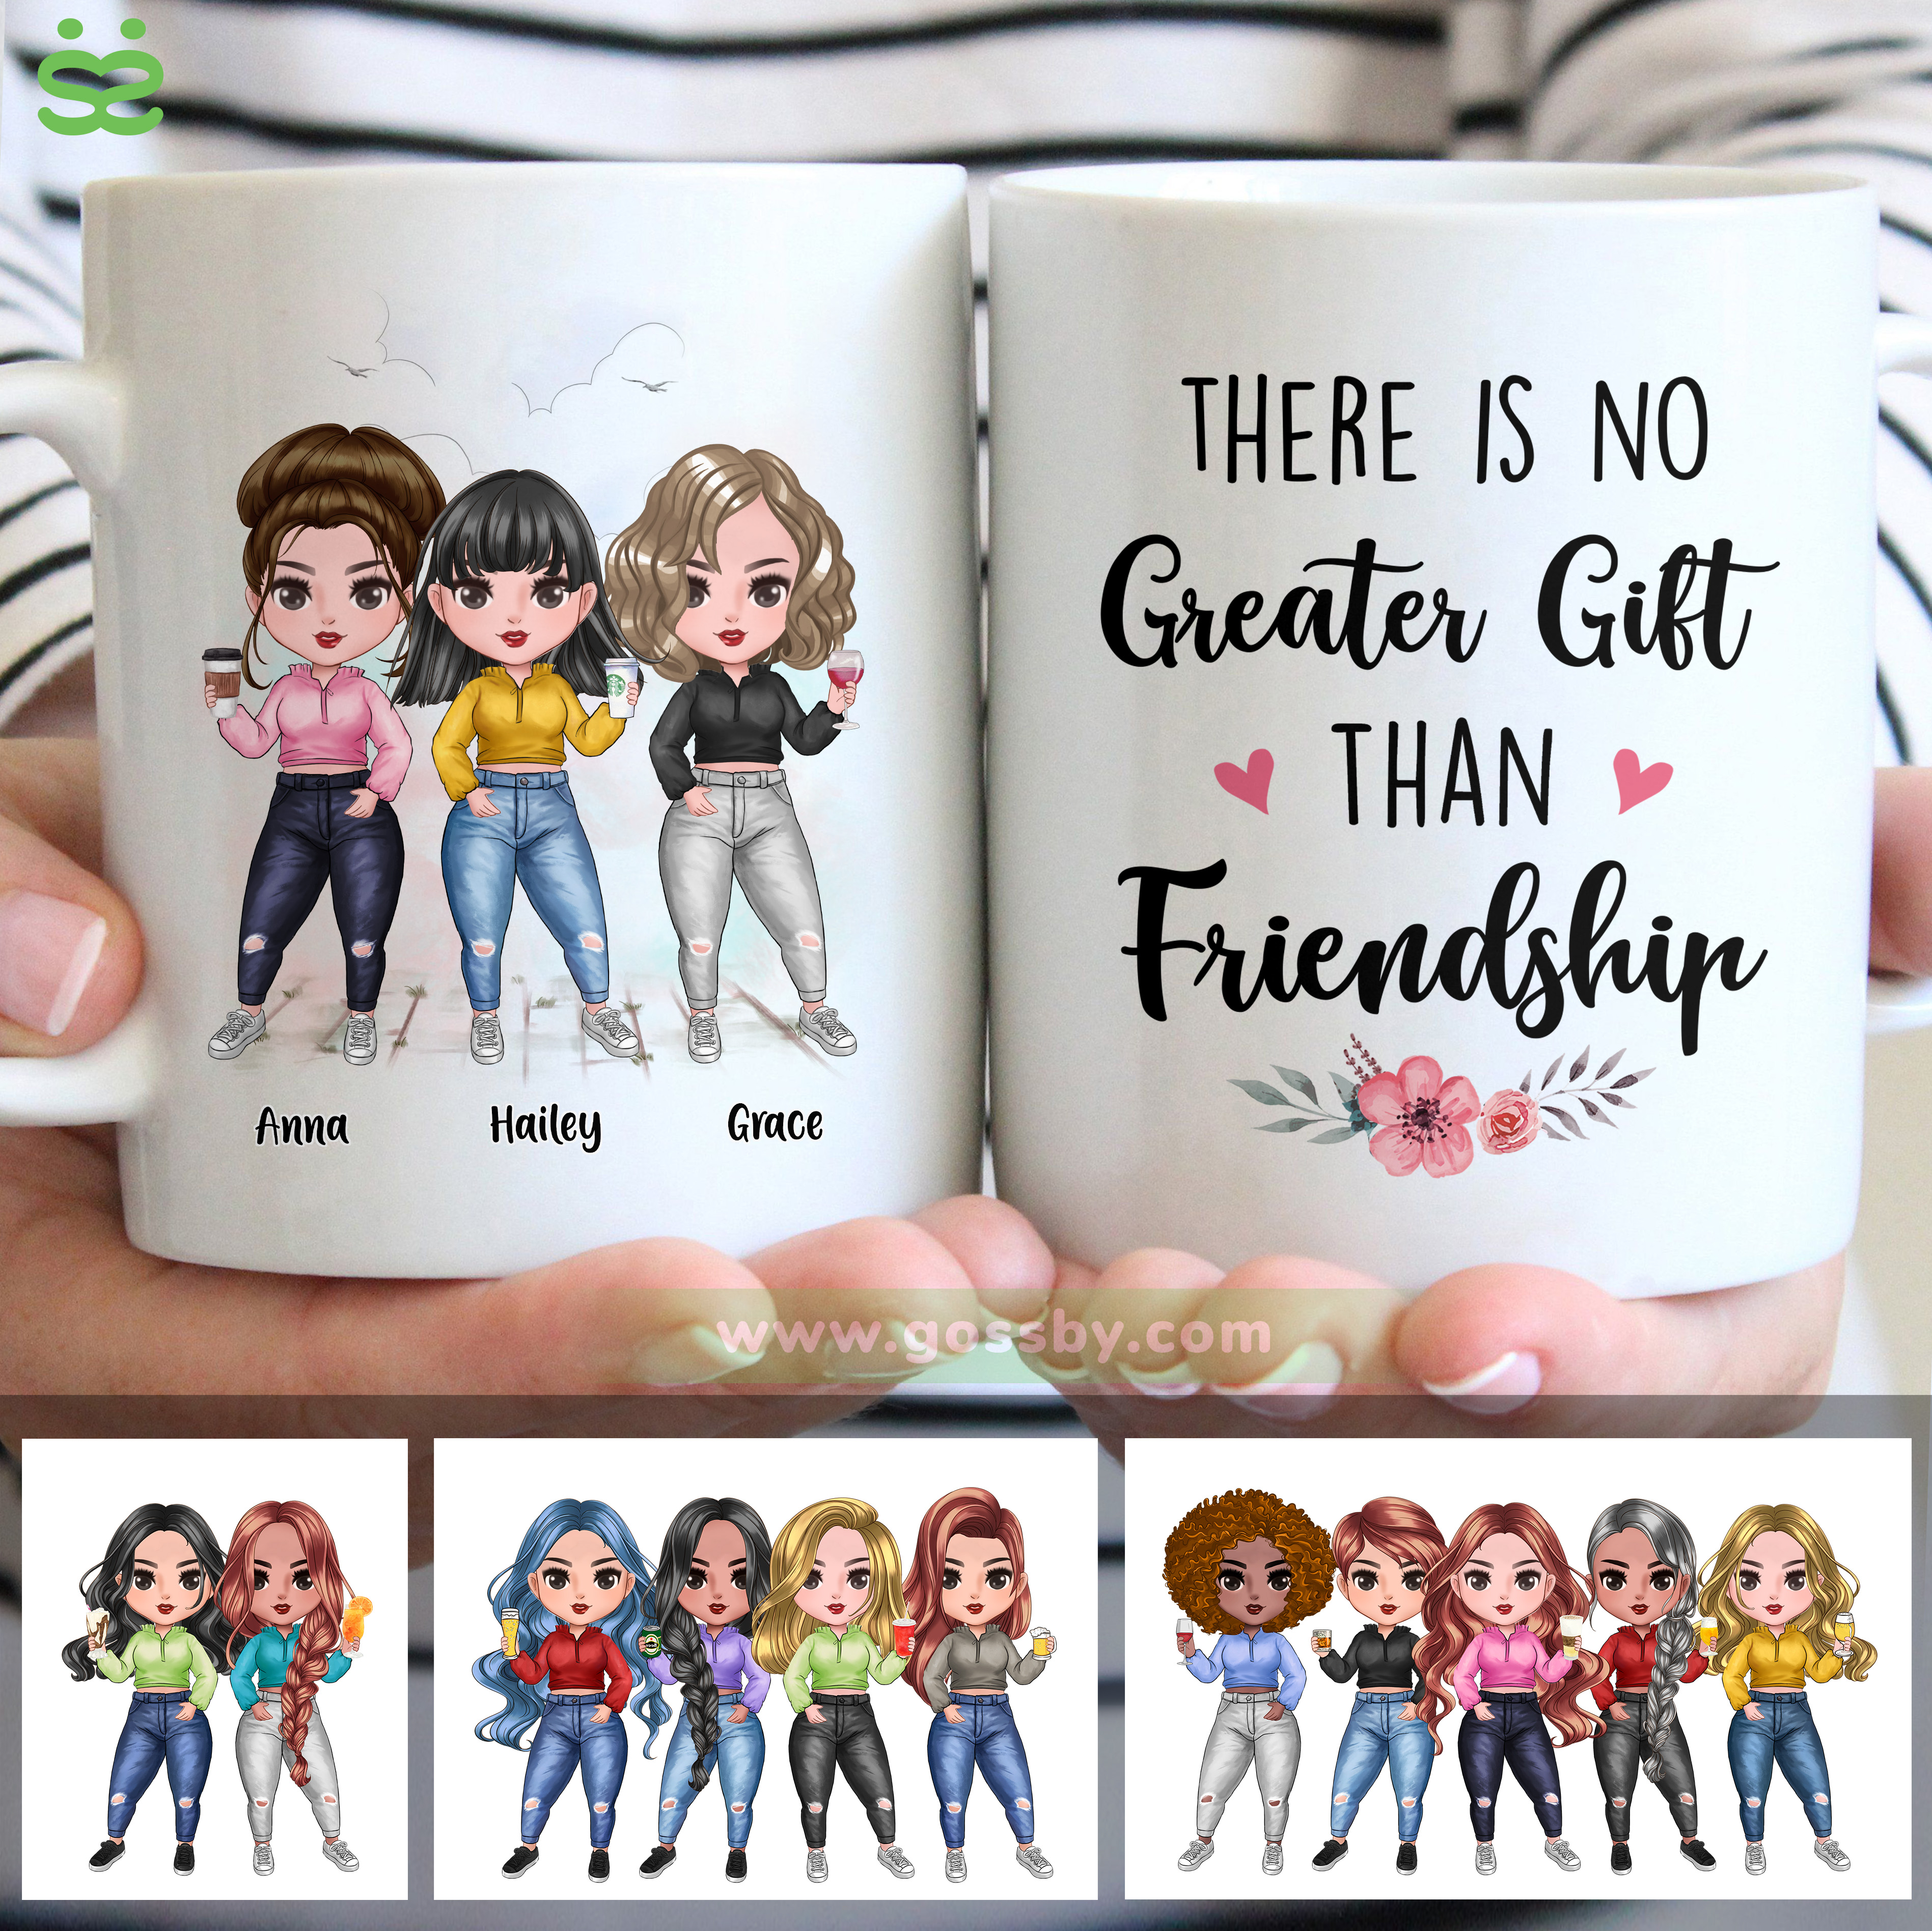 Personalized Mug - There Is No Greater Gift Than Friendship (Up to 7 Girls)